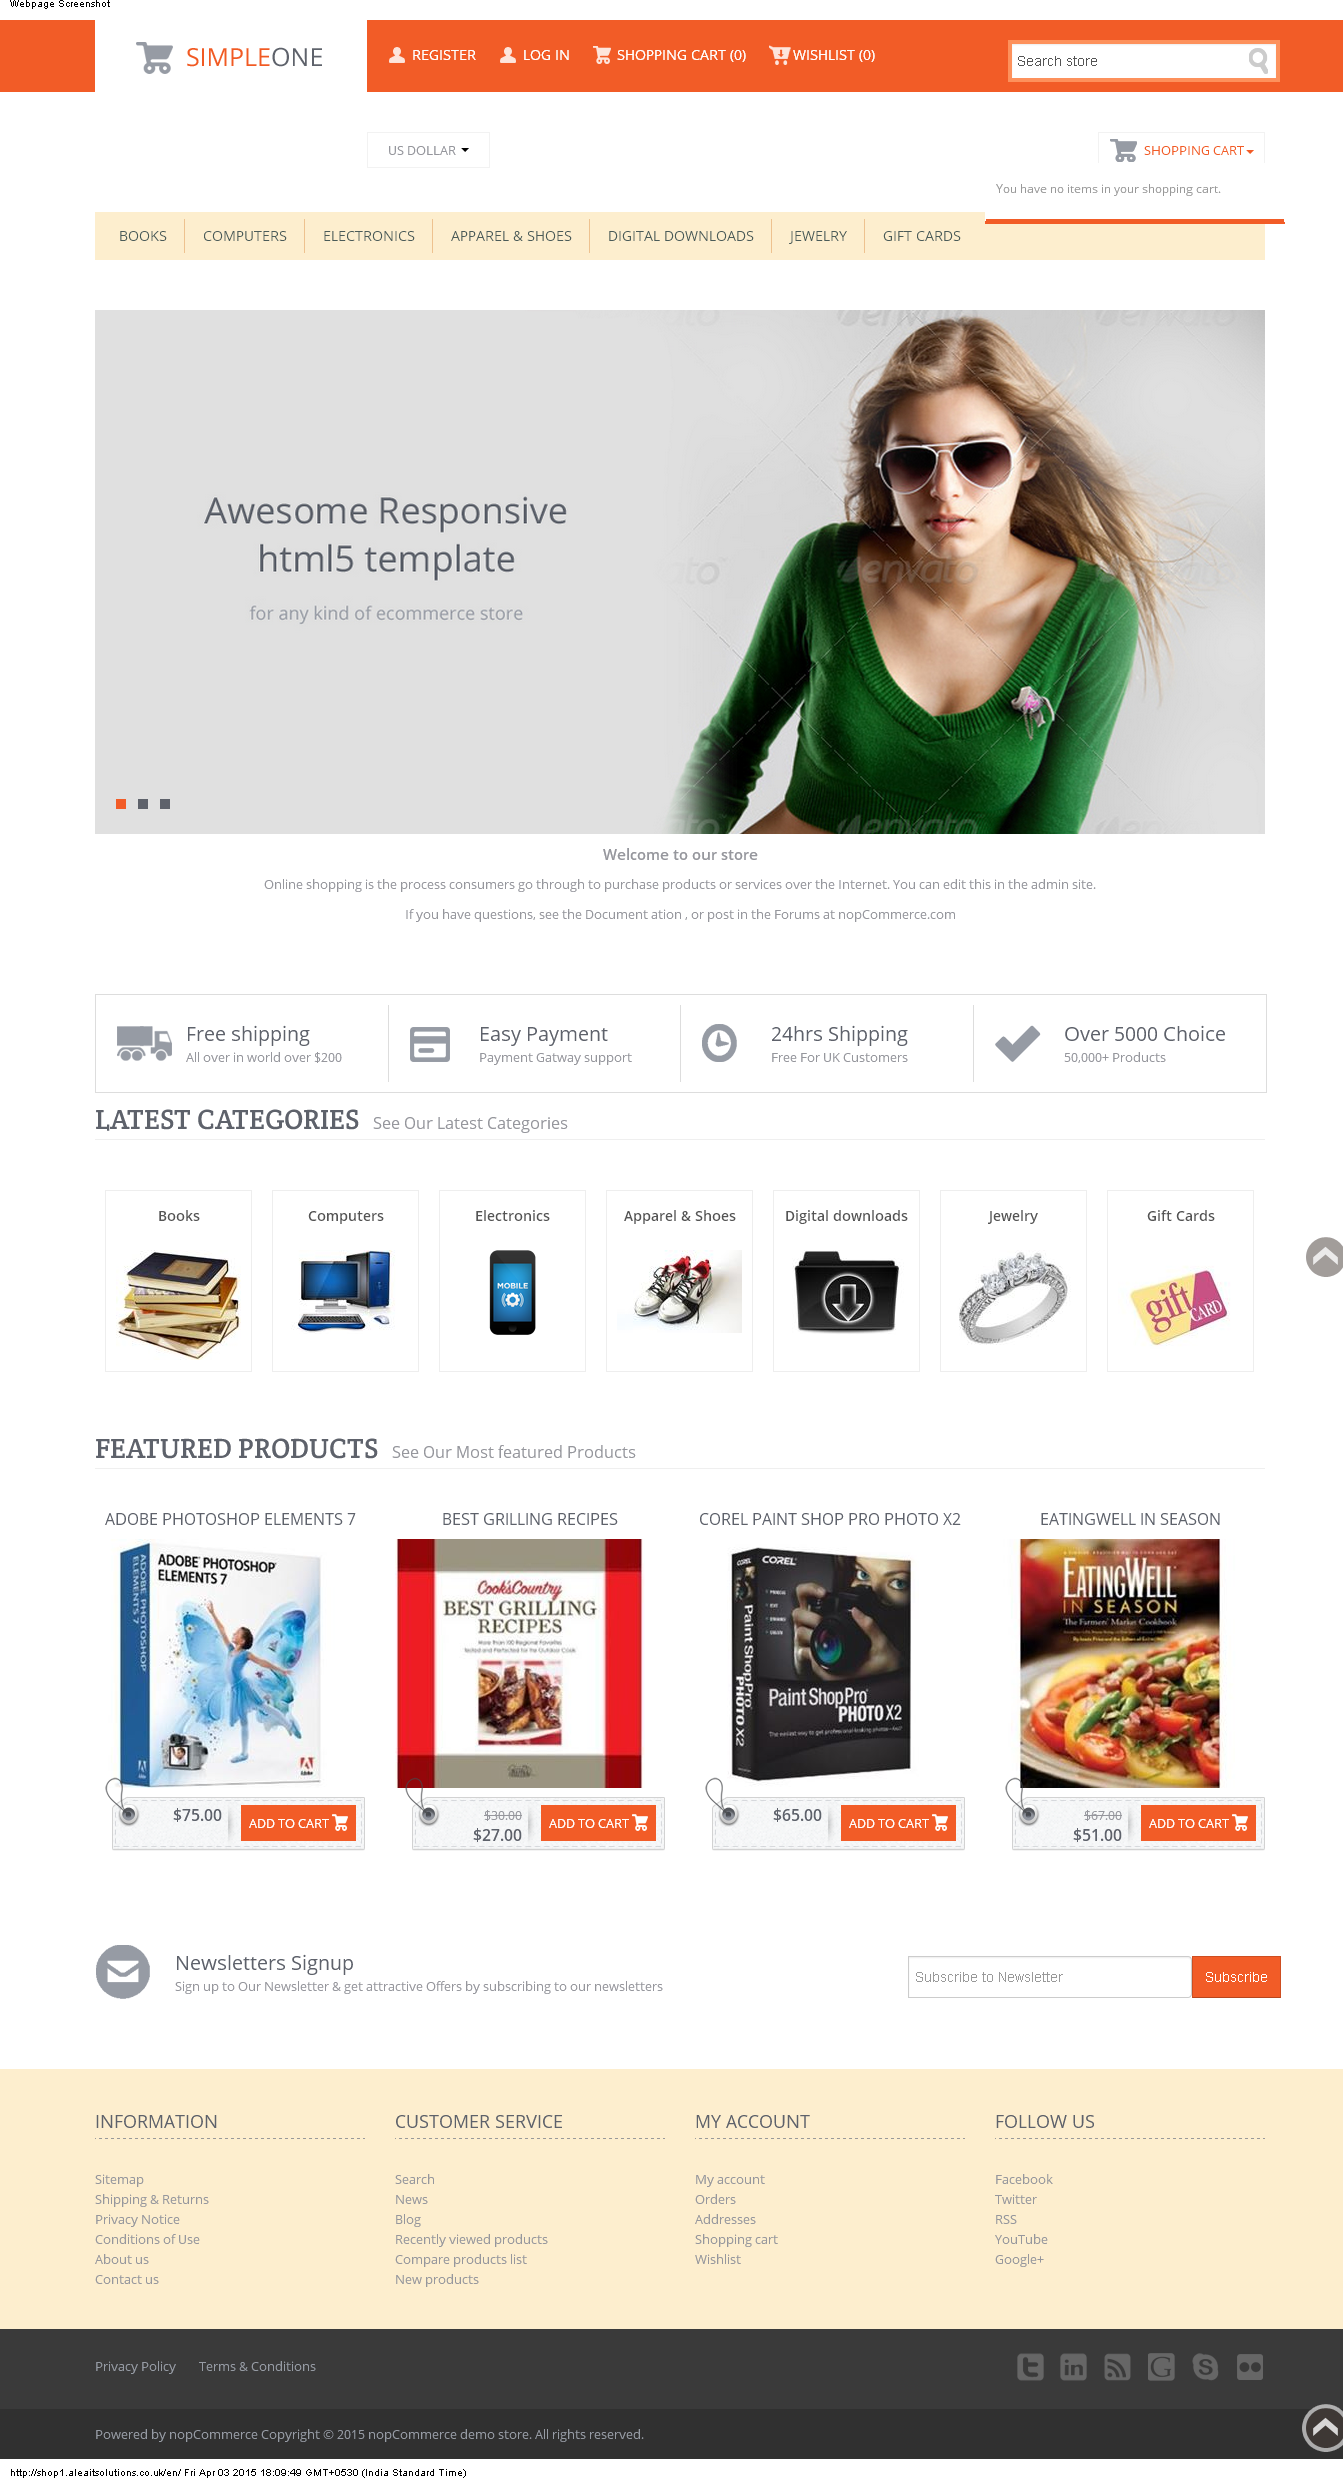 Asp Website For Shopping Developed Using Opensource Ecommerce